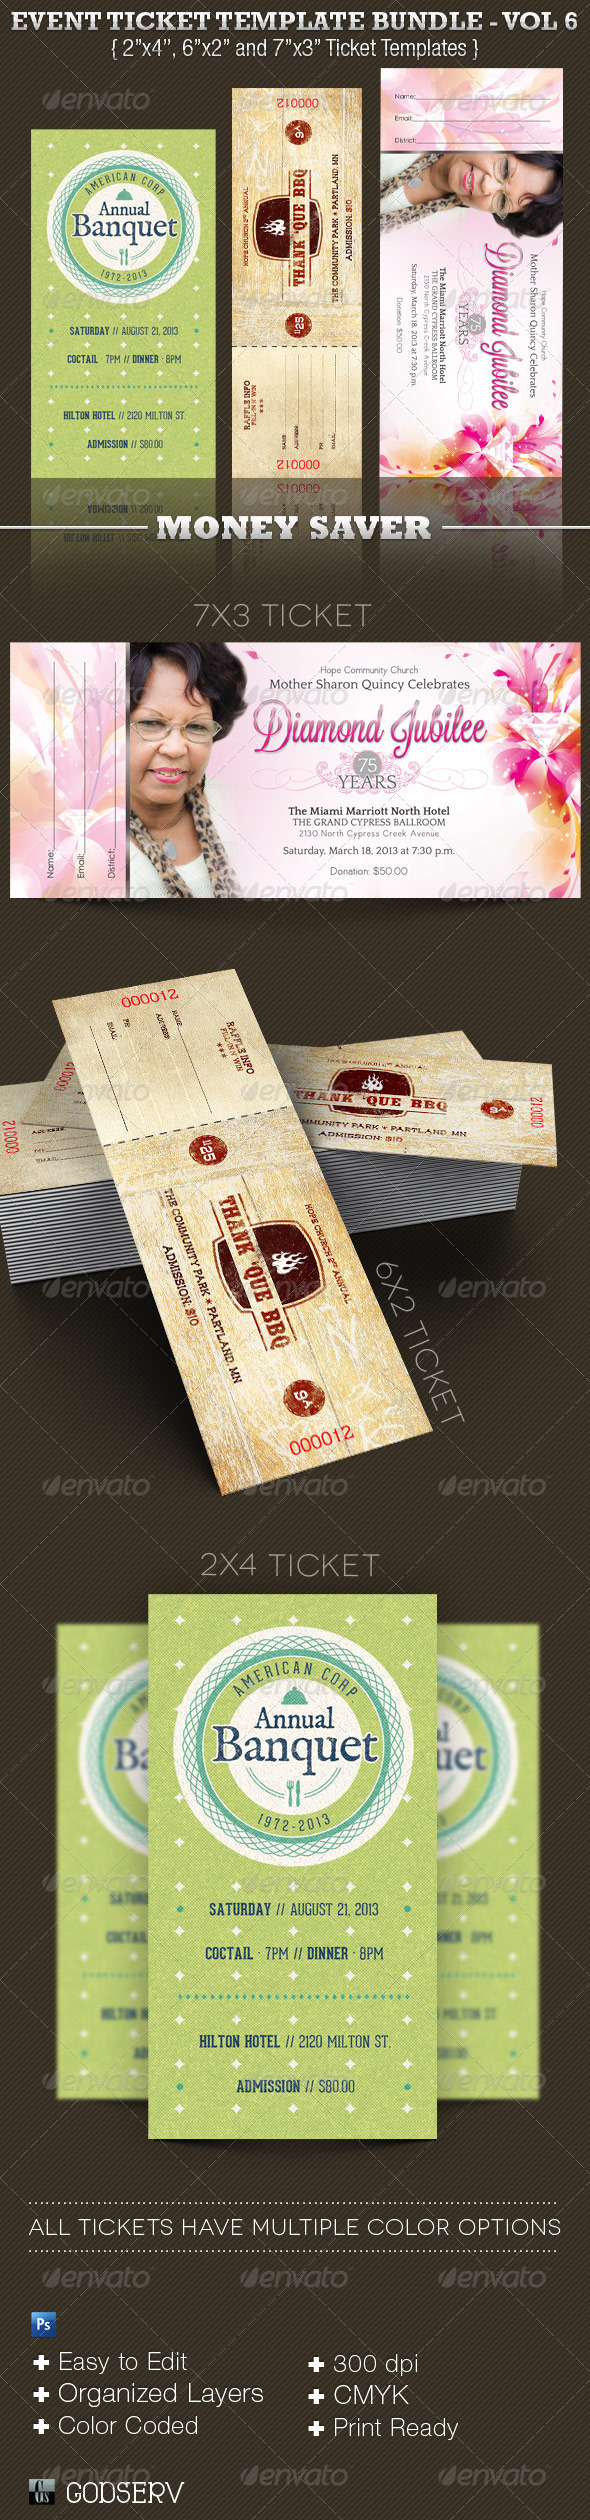 GraphicRiver Event Ticket Template Bundle Volume 6 3959905